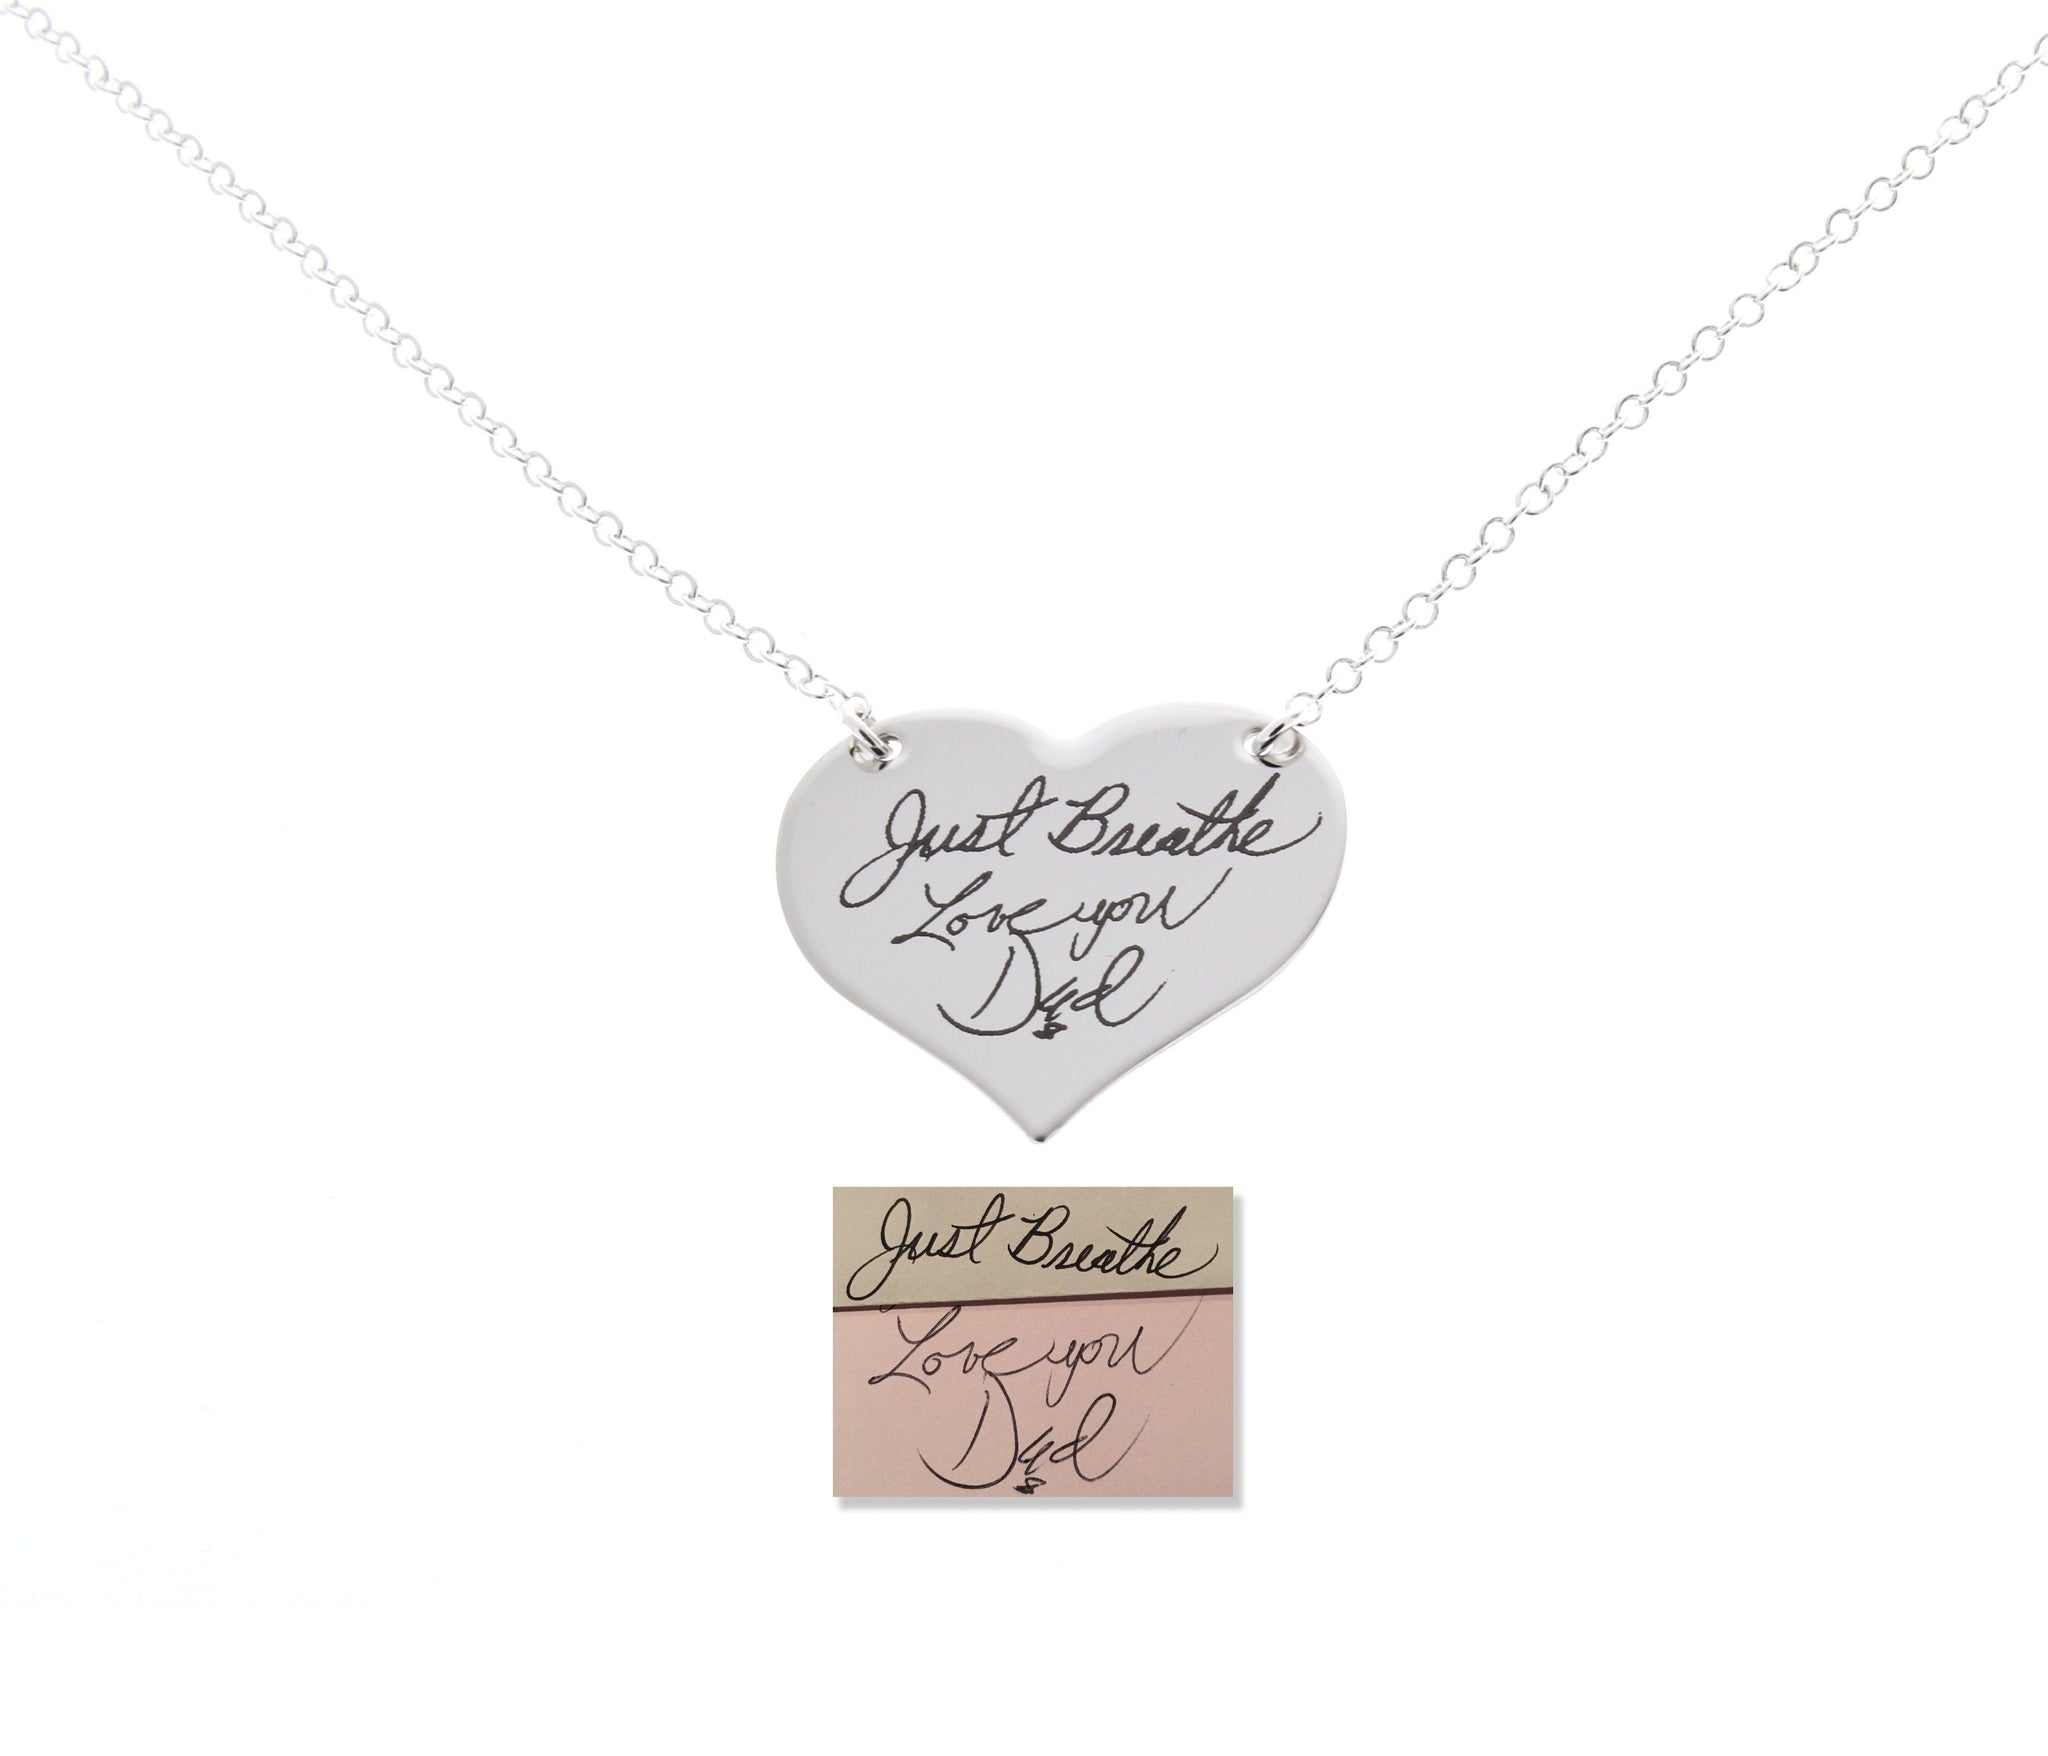 Handwriting engraved, engraved signatures, memorial keepsakes, actual handwritten necklace, memorial gifts, anniversary gifts, drawings engraved